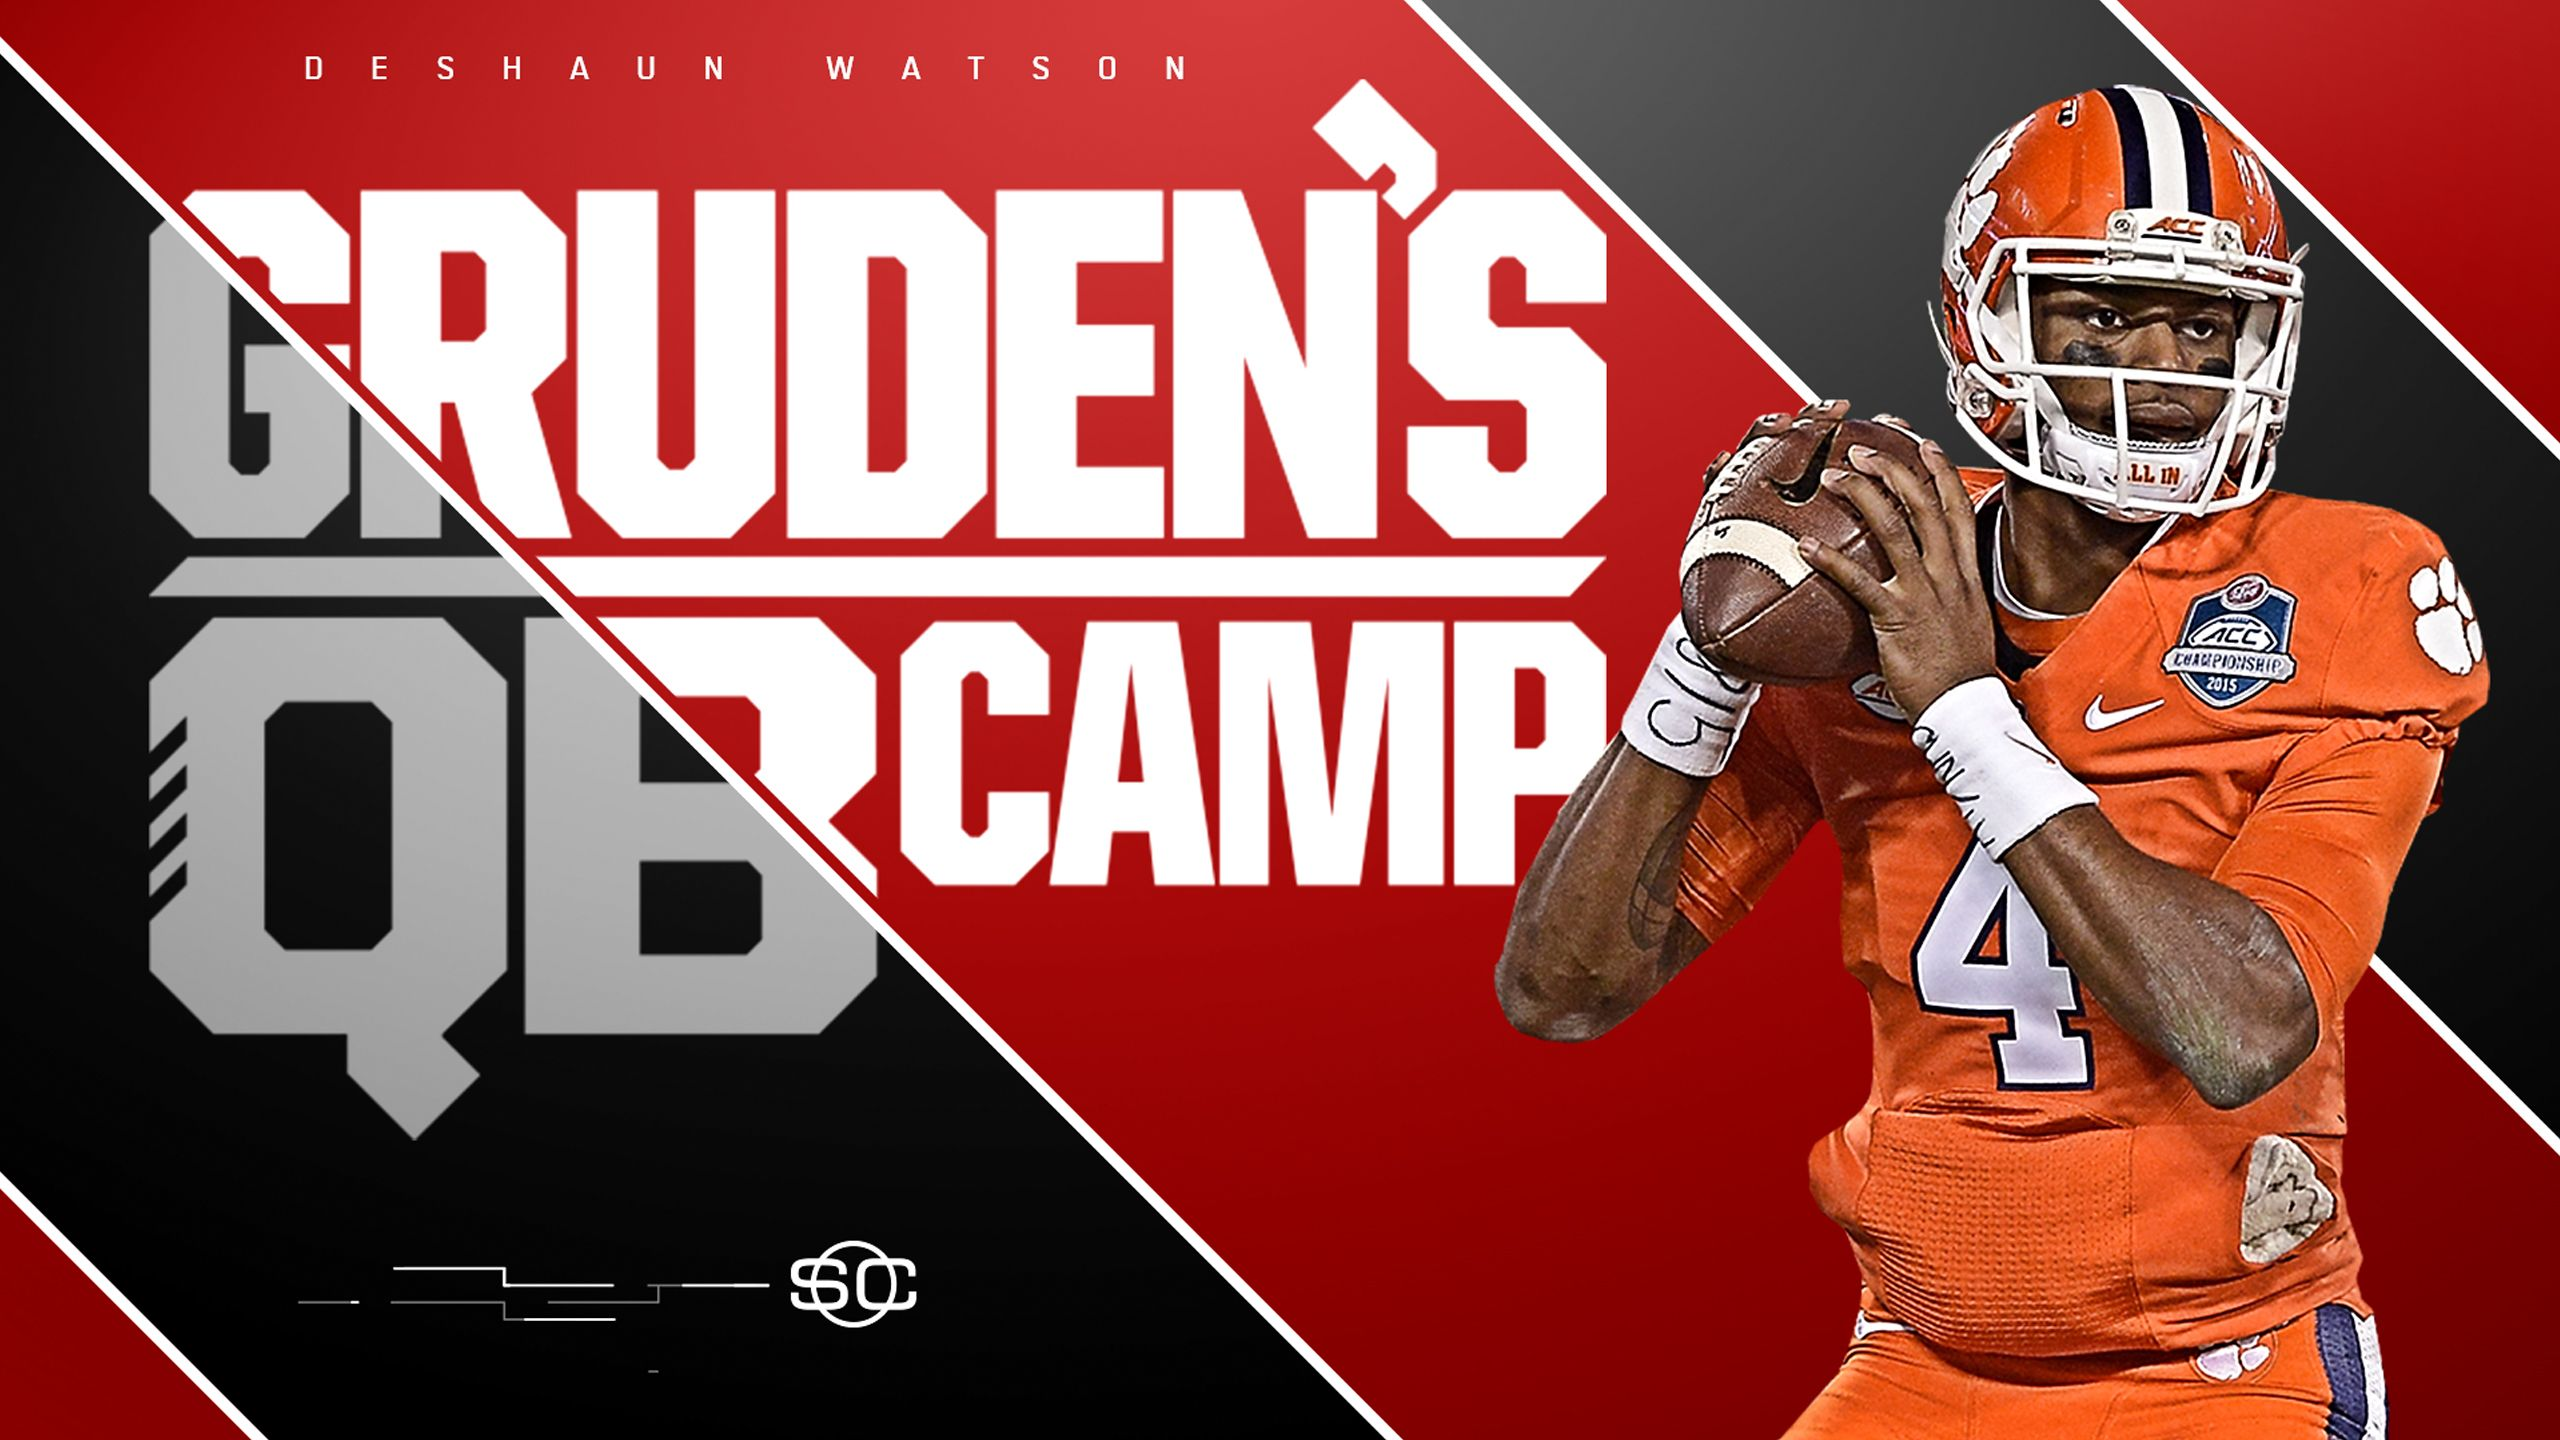 SportsCenter Special: Gruden's QB Camp Presented by Maui Jim- Deshaun Watson